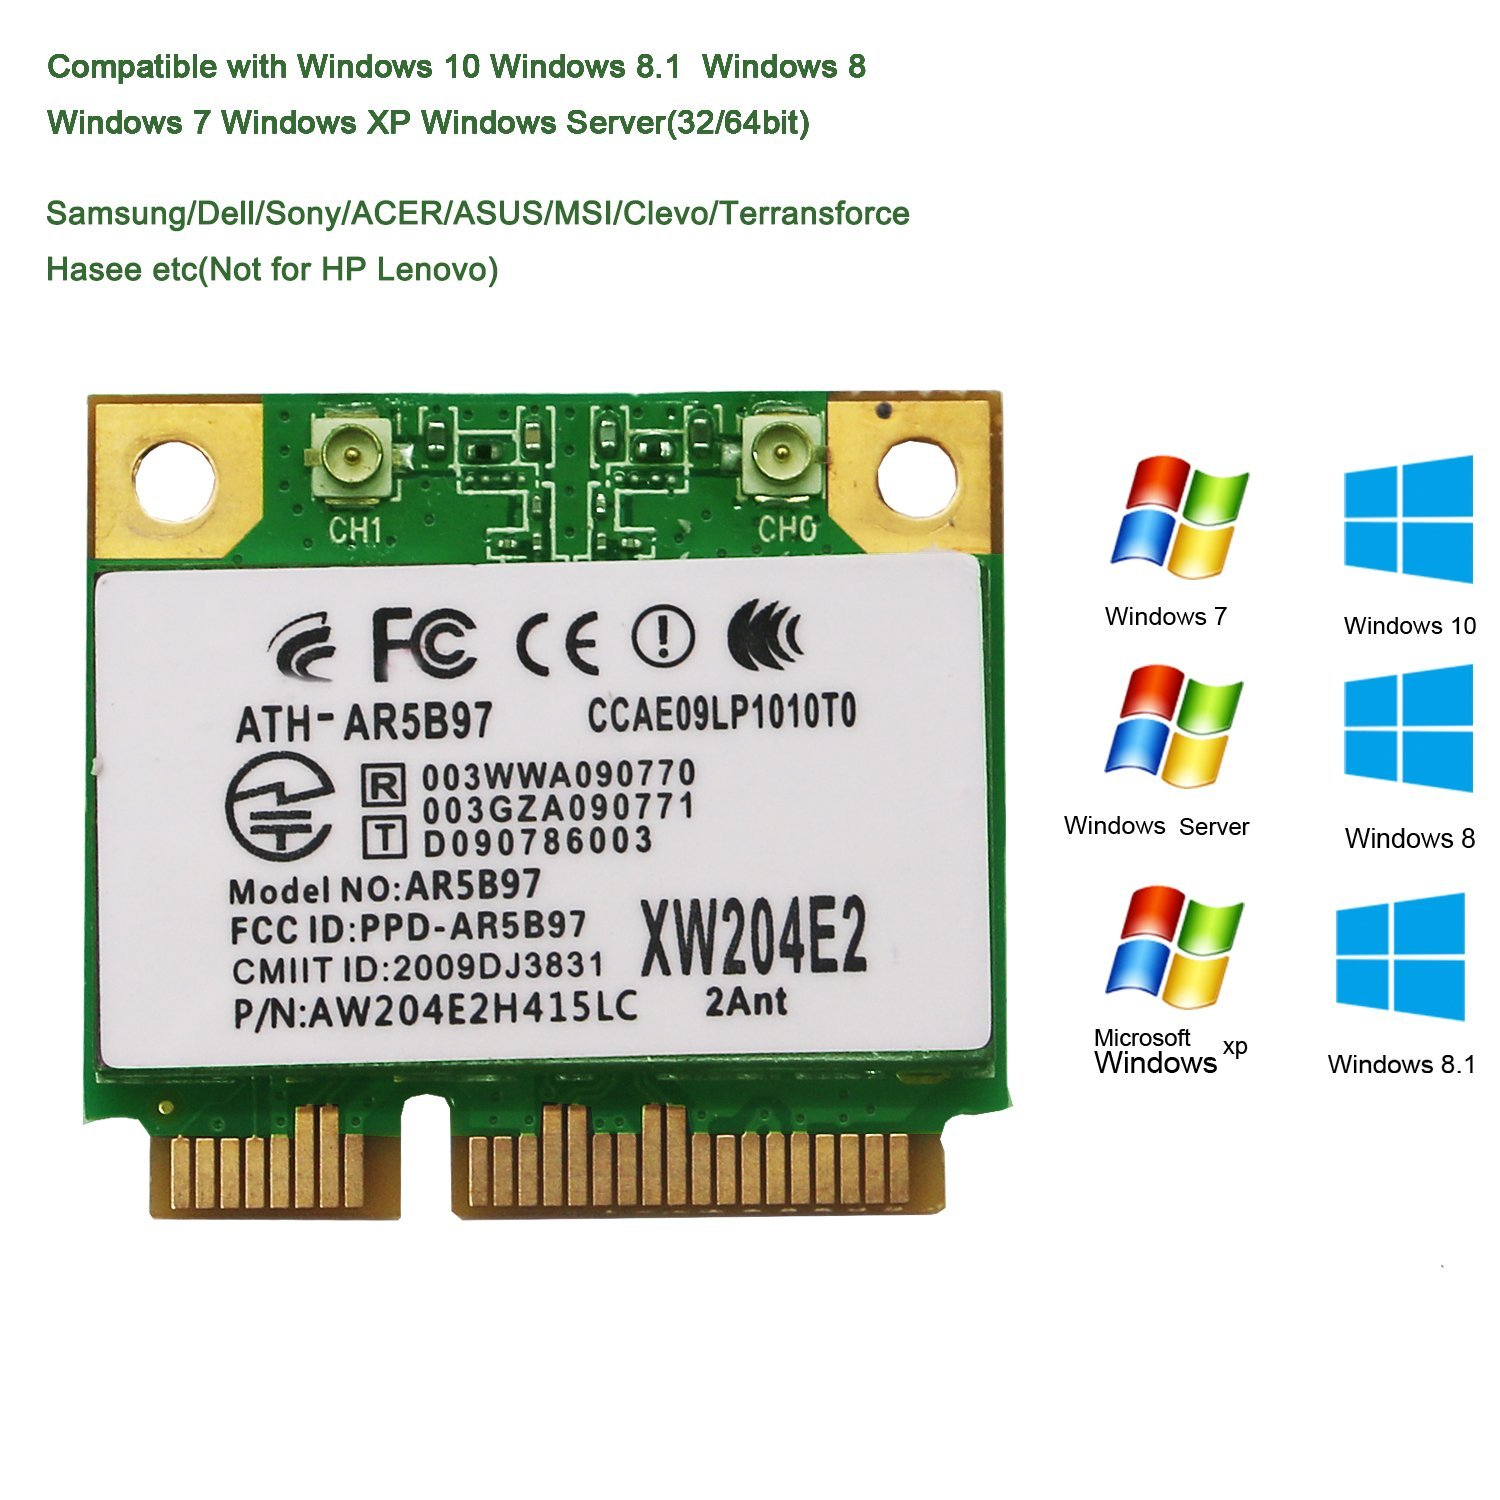 atheros ar9287 wireless network adapter windows 7 32 bits download